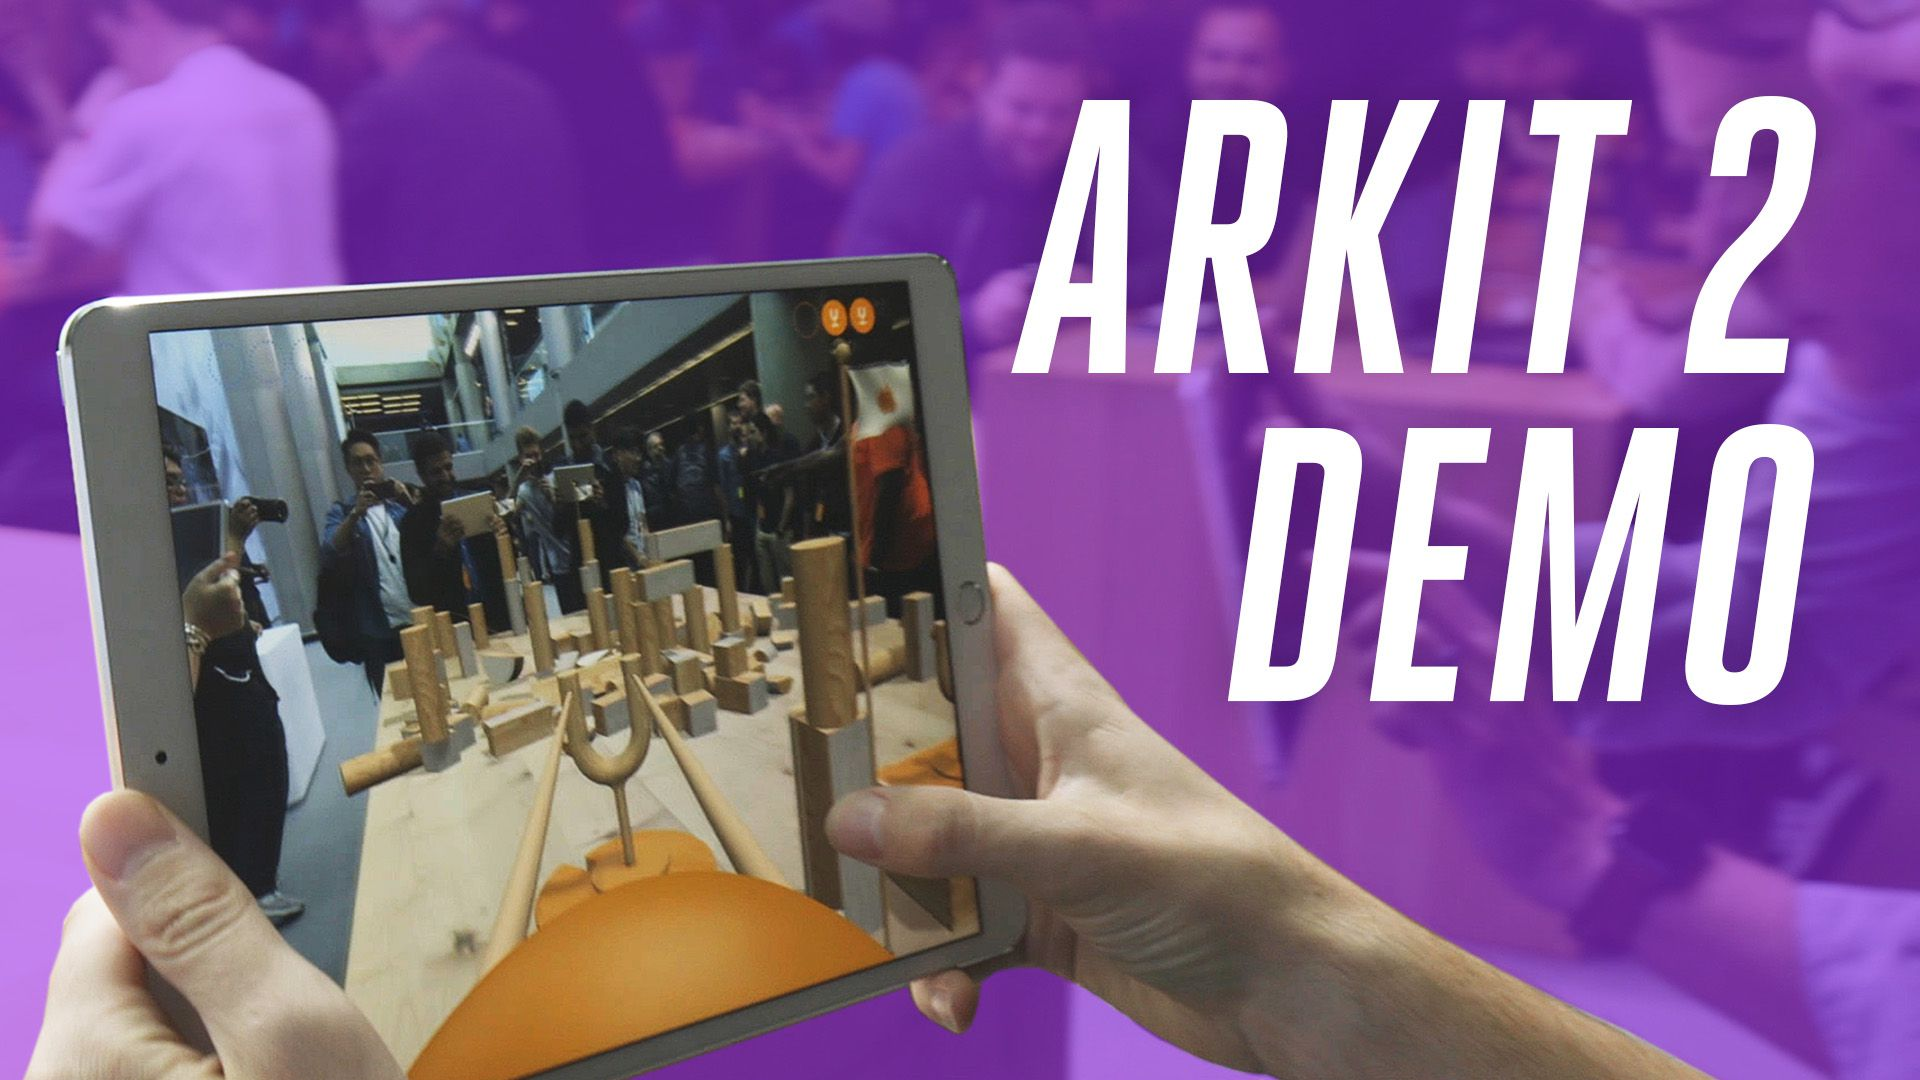 Apple's ARKit 2 0 supports multiplayer and introduces a new